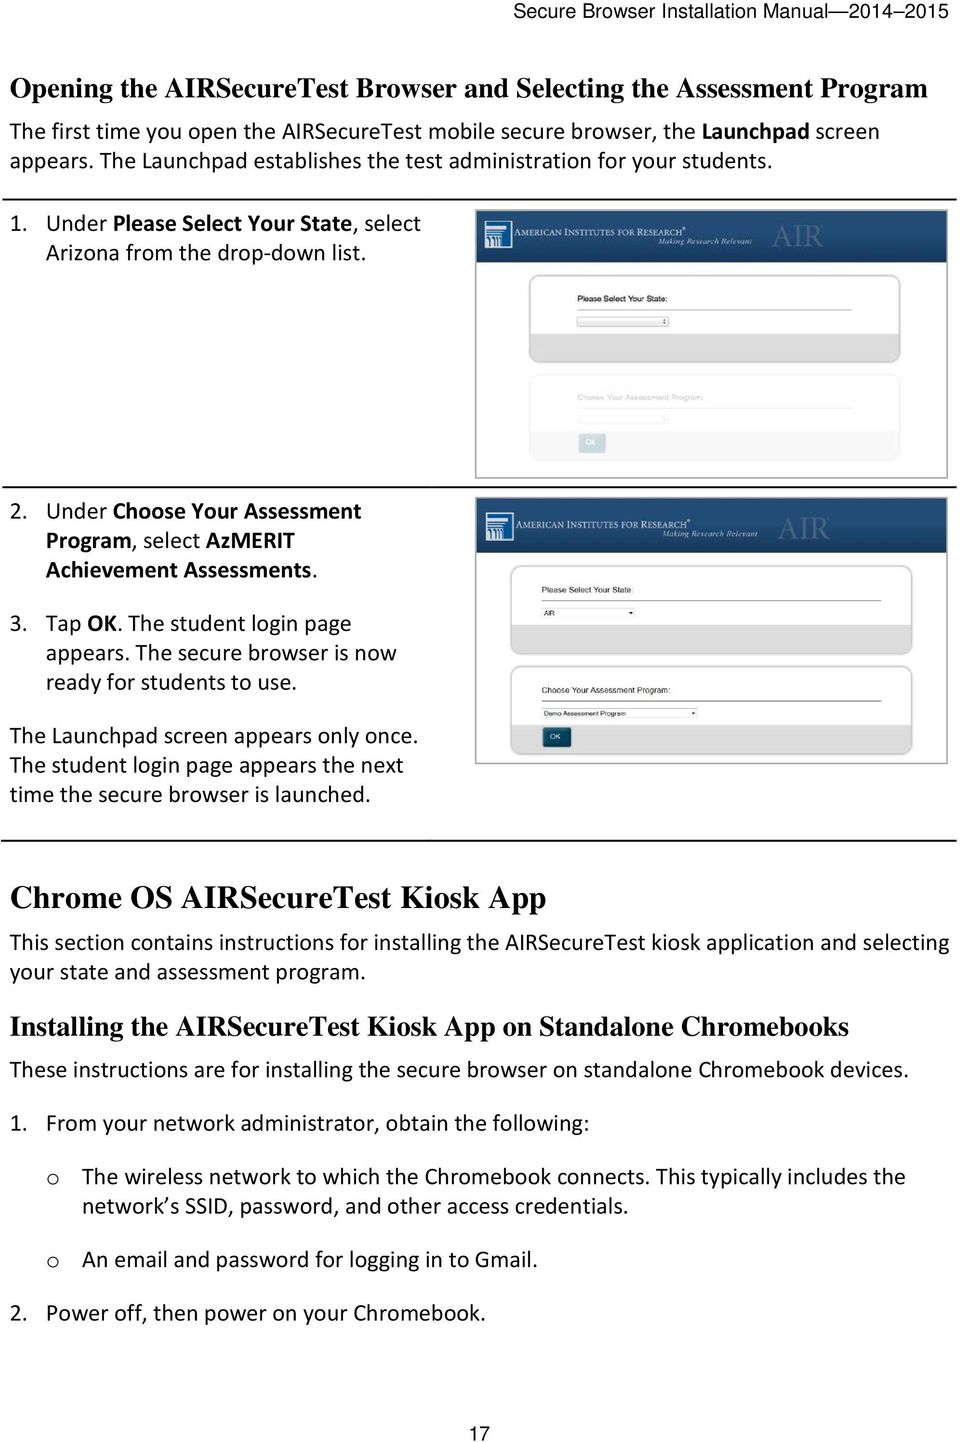 Under Choose Your Assessment Program, select AzMERIT Achievement Assessments. 3. Tap OK. The student login page appears. The secure browser is now ready for students to use.